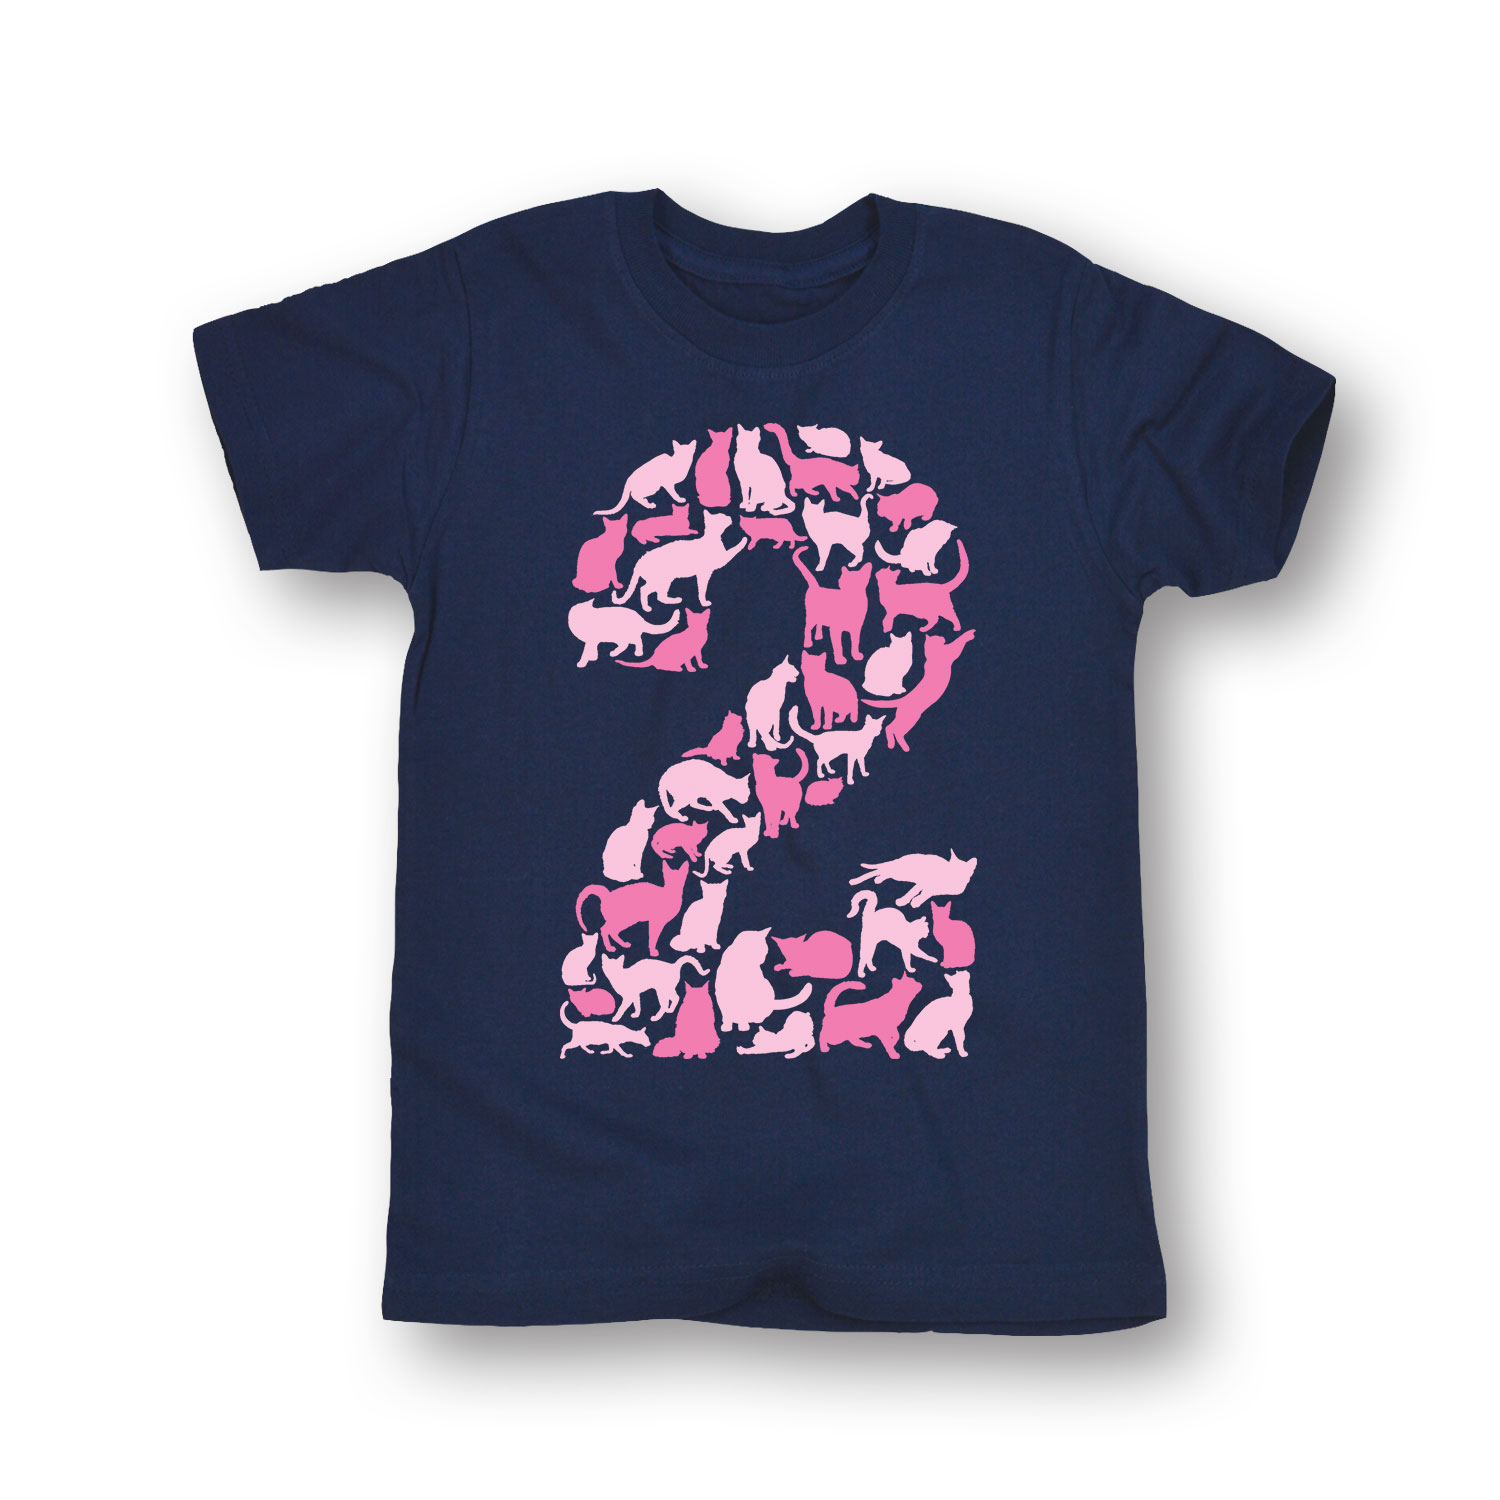 Age 2 Cats Girls-TODDLER SHORT SLEEVE TEE